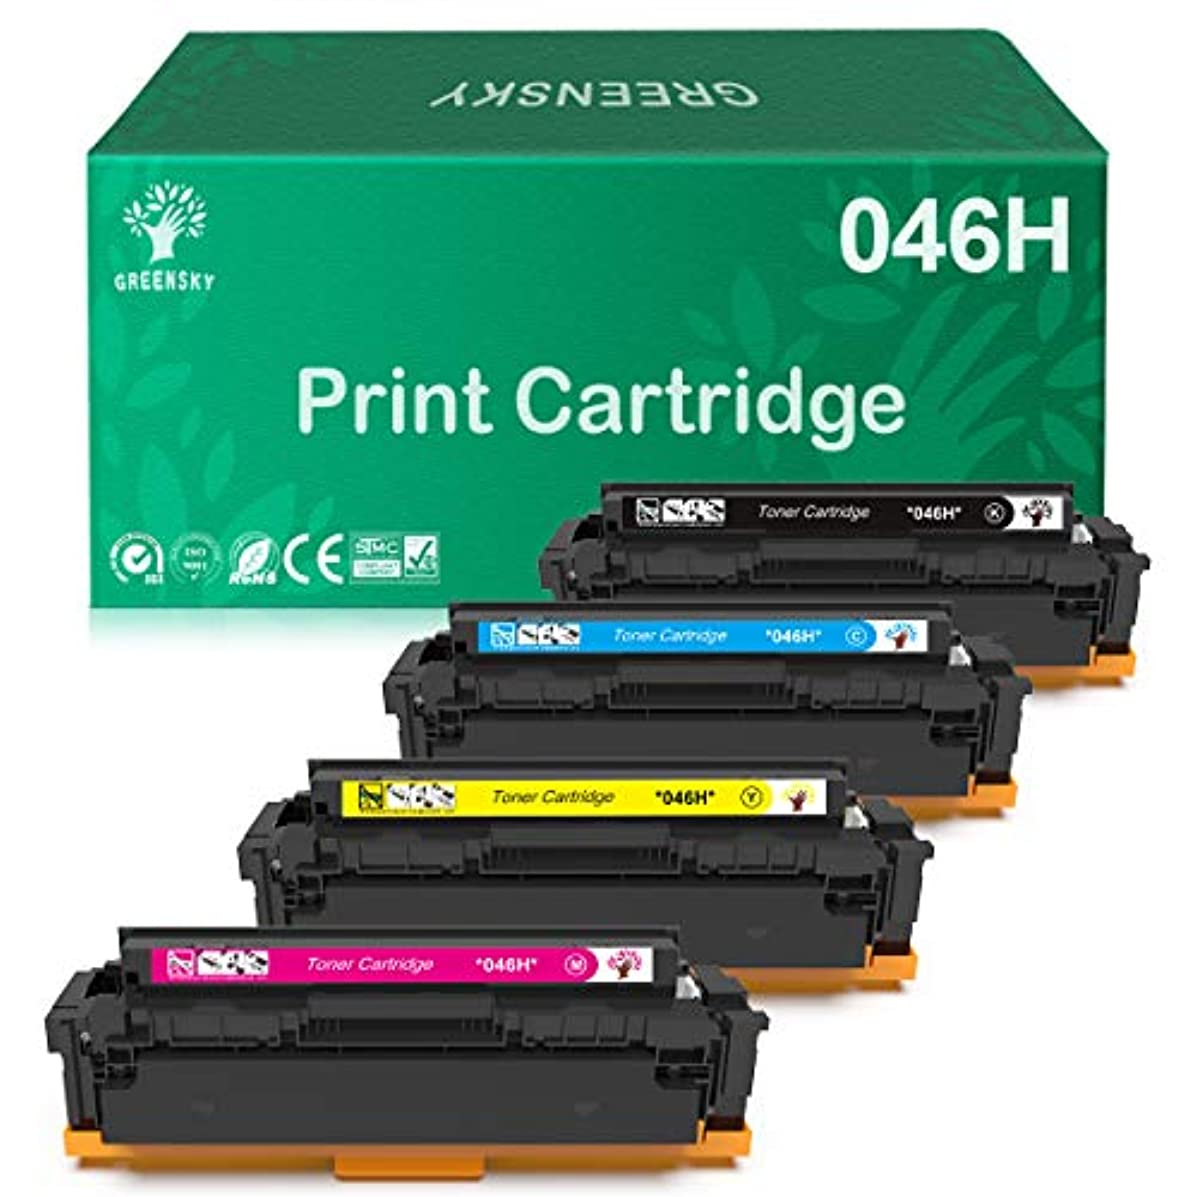 GREENSKY Compatible Toner Cartridge Replacment for Canon 046 046H CRG 046 046H for Canon Color ImageCLASS MF735Cdw LBP654Cdw MF731Cdw MF733Cdw Laser Printer (4 Pack)